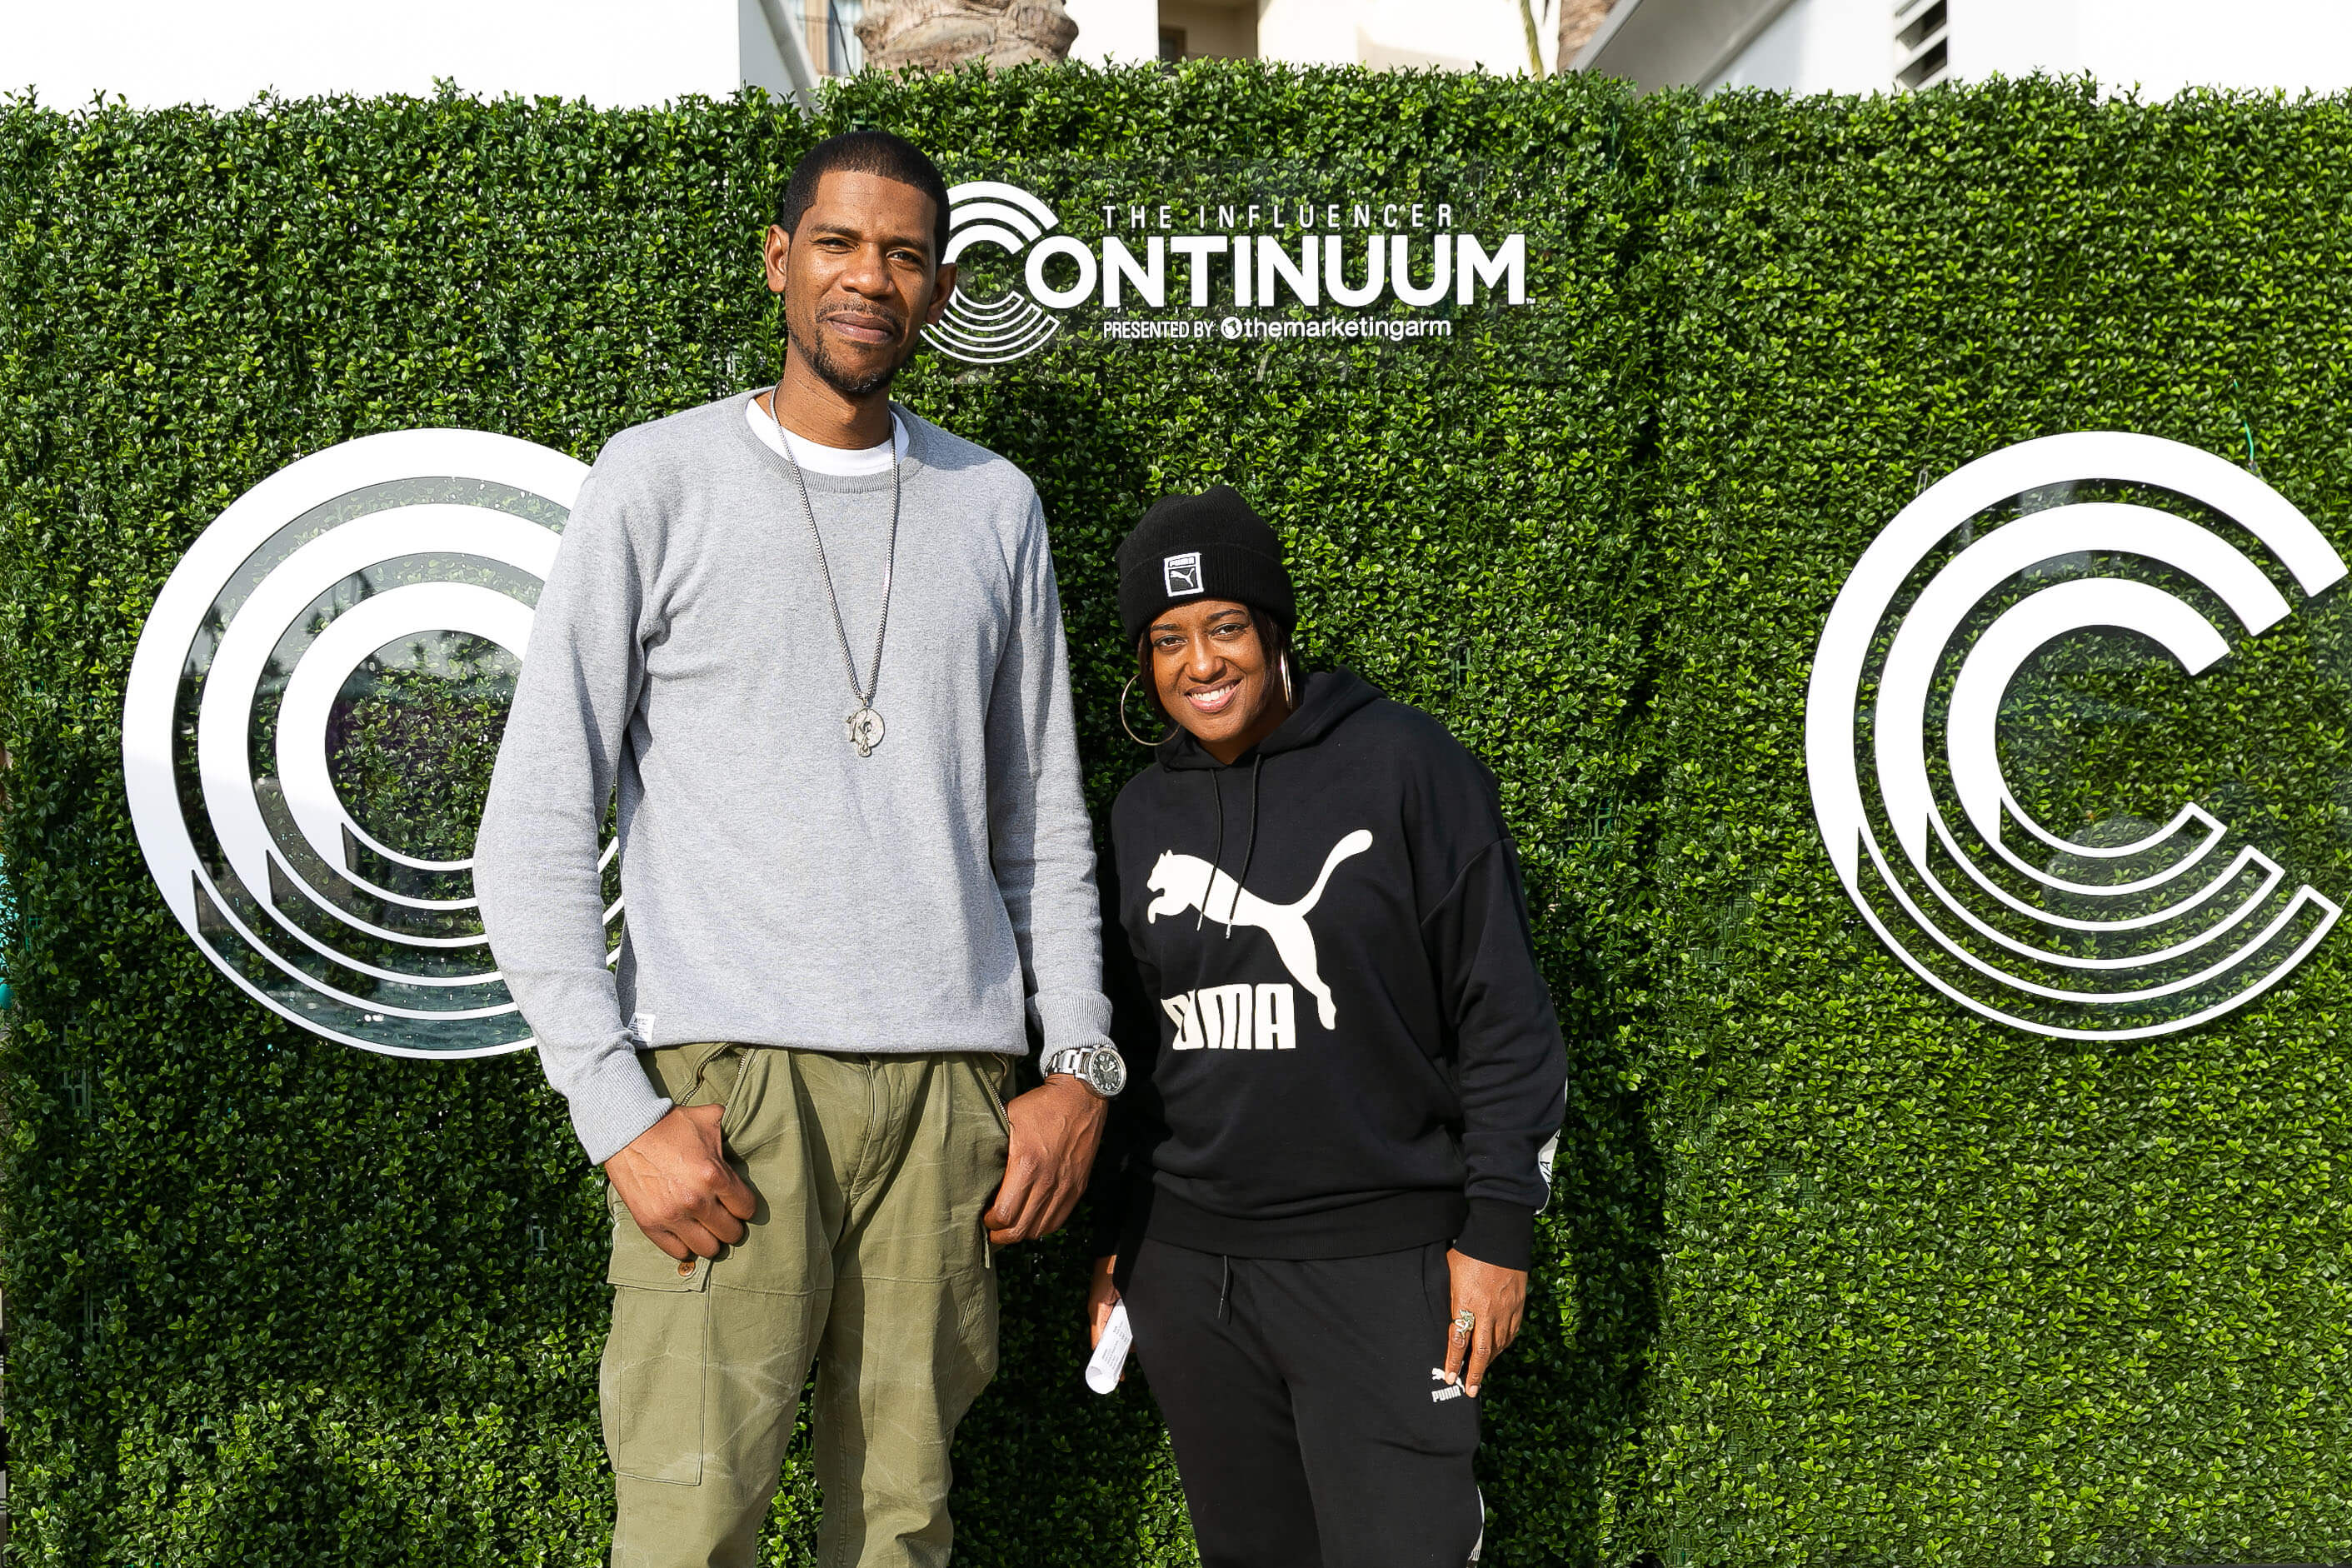 Attendees experienced an amazing performance by culture and music geniuses, Young Guru and Rapsody.